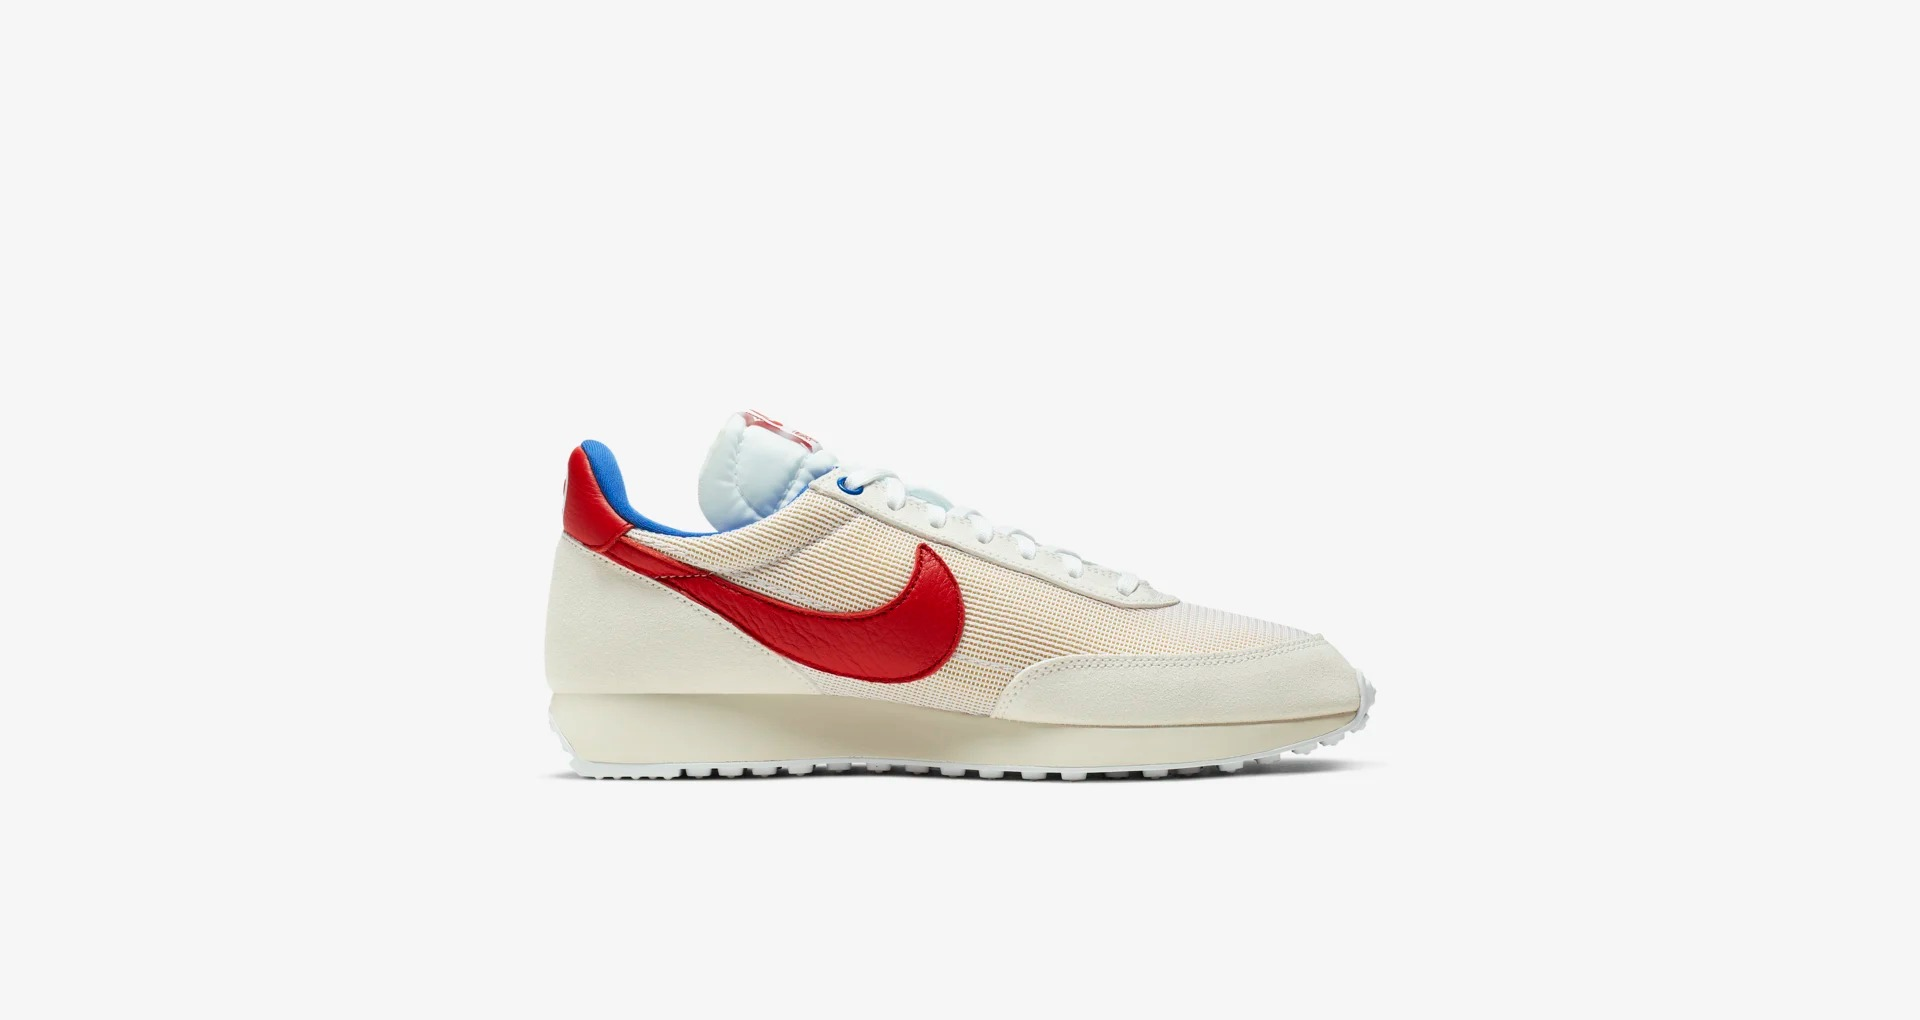 CK1905 100 Stranger Things x Nike Air Tailwind 79 2